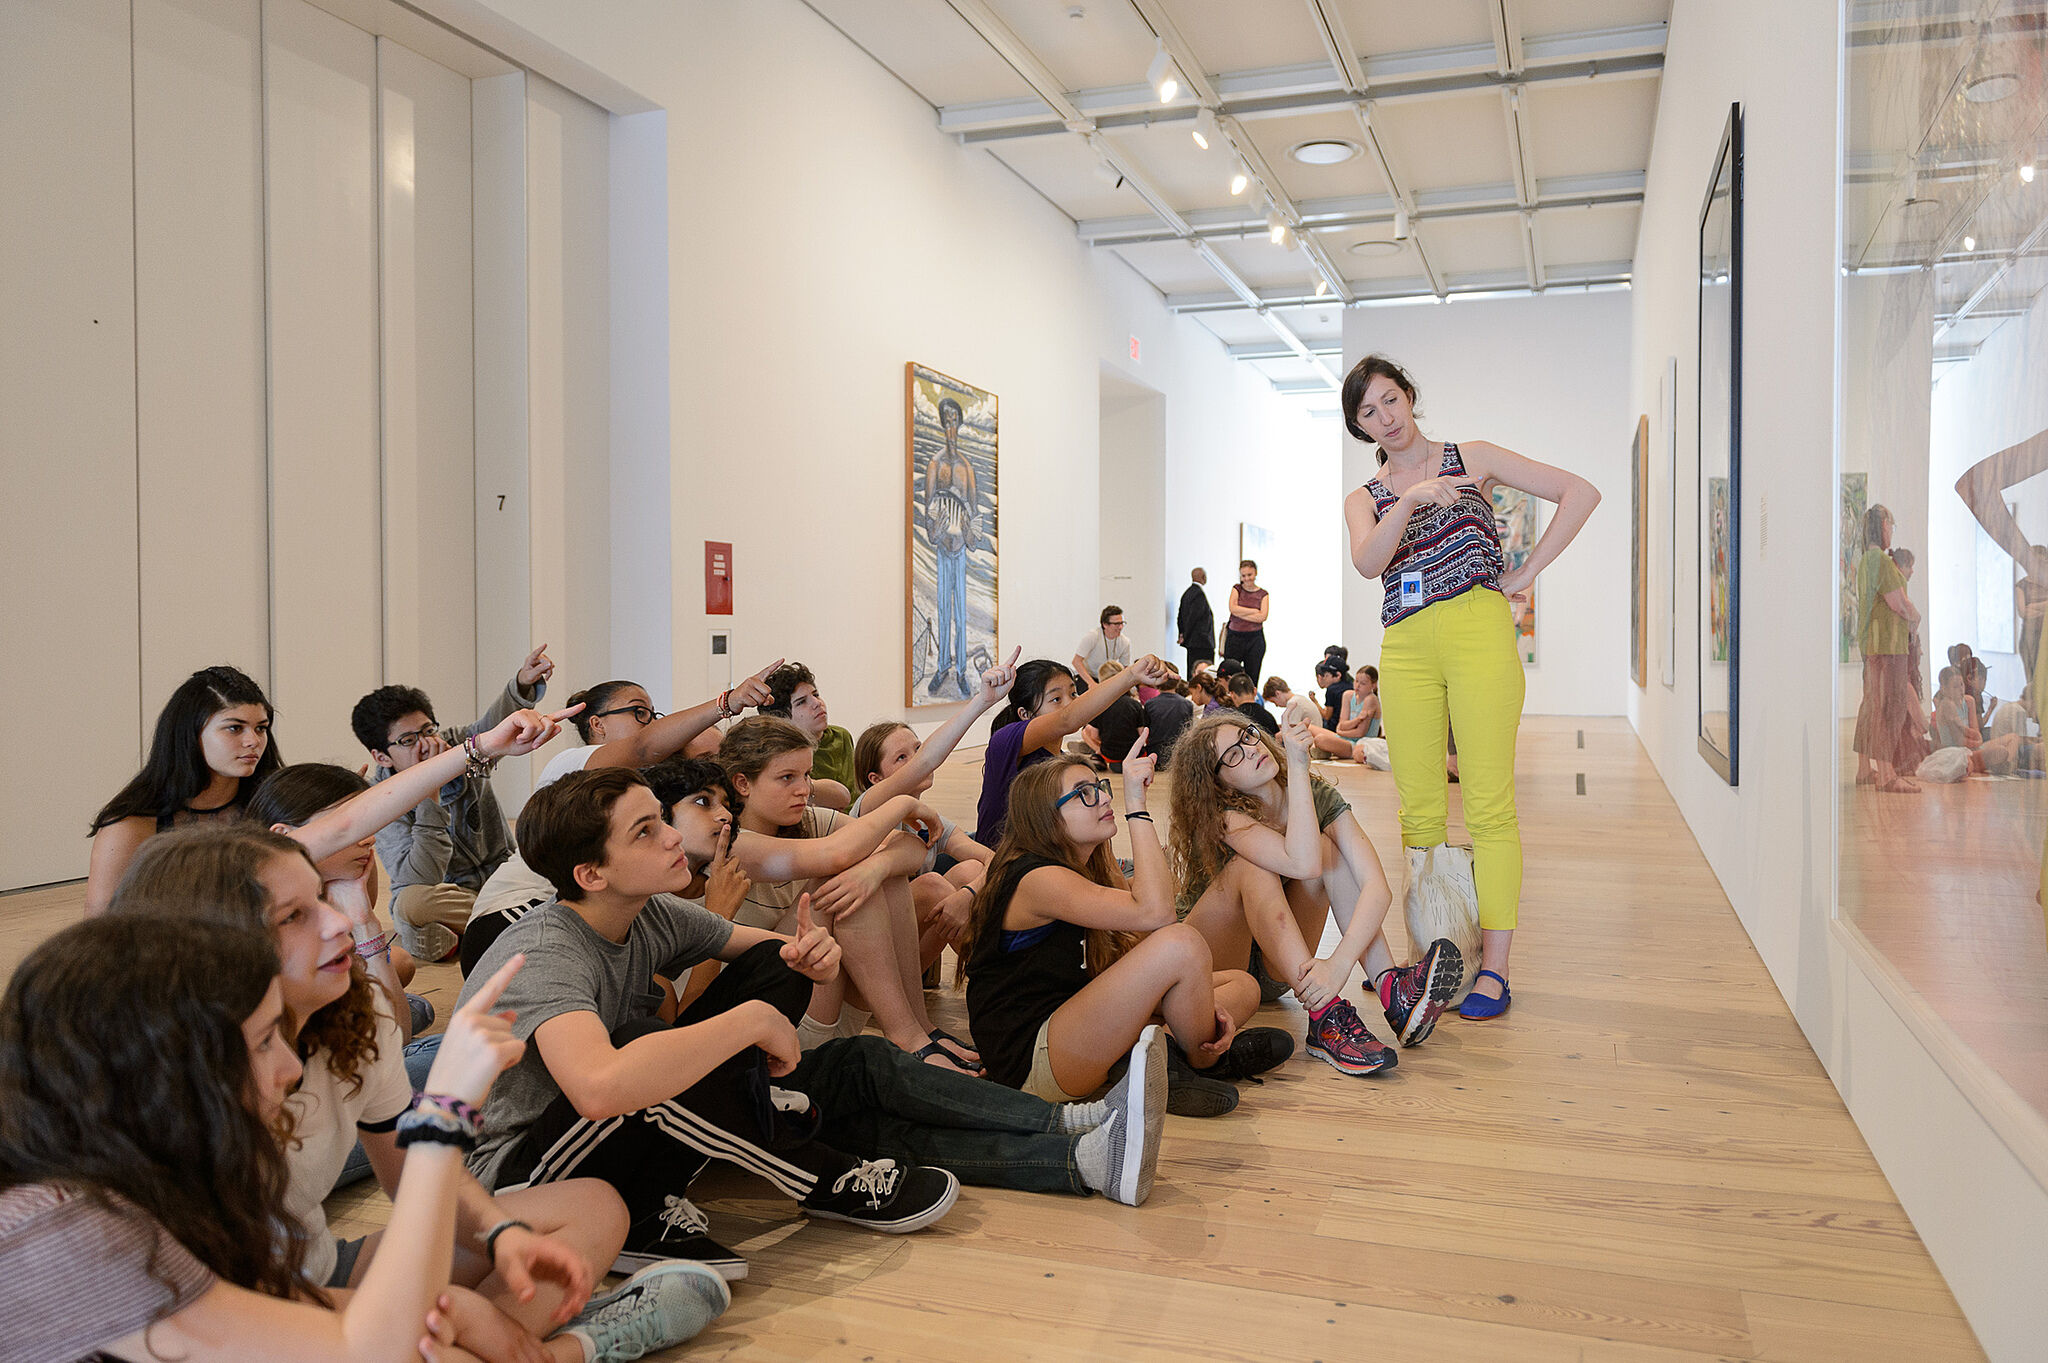 group of students sit and point at art in gallery